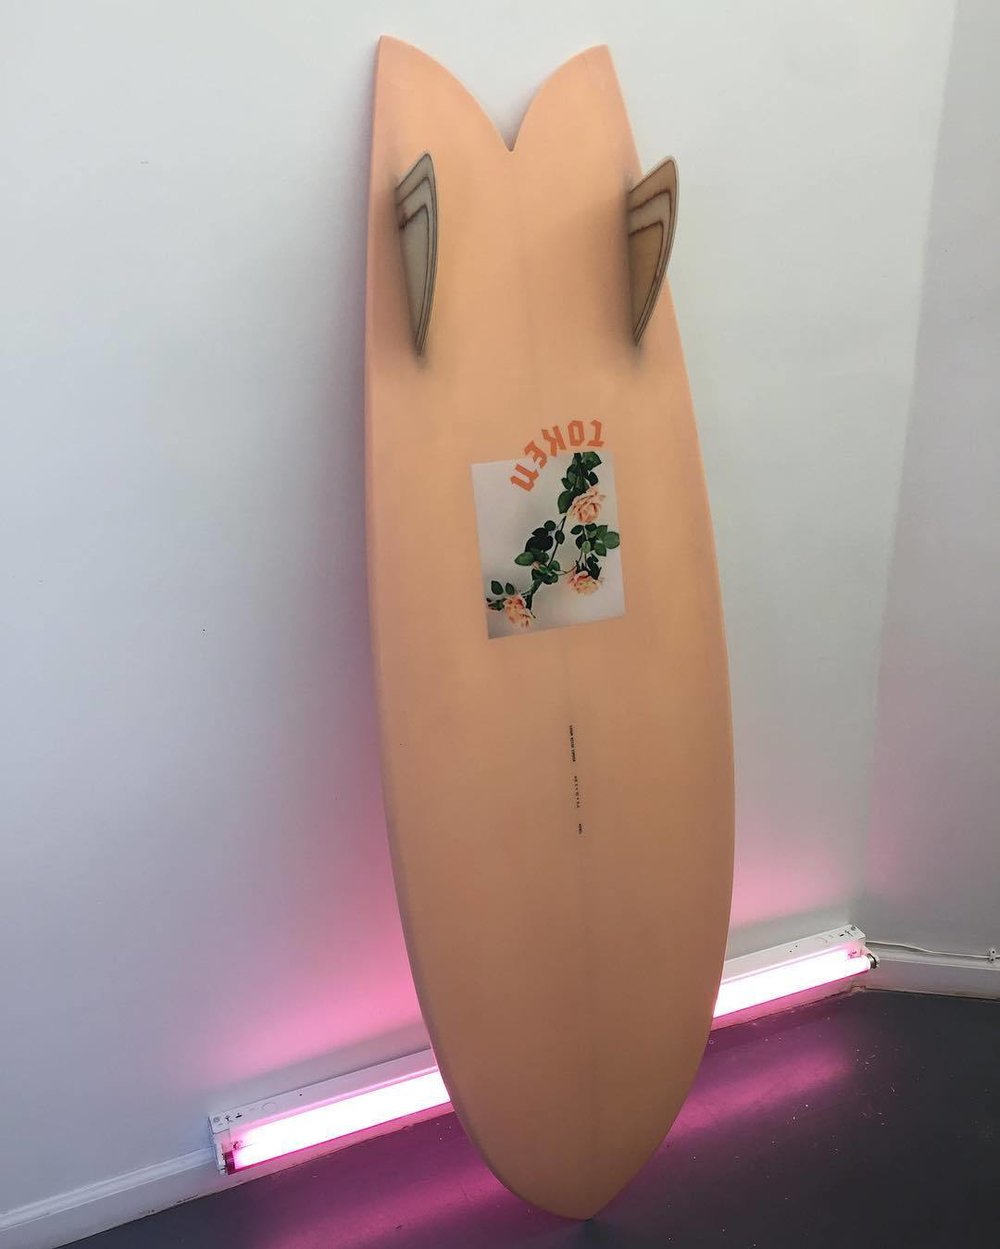 5'6 token fish available Mollusk Surf shop in SF 👄👄👄